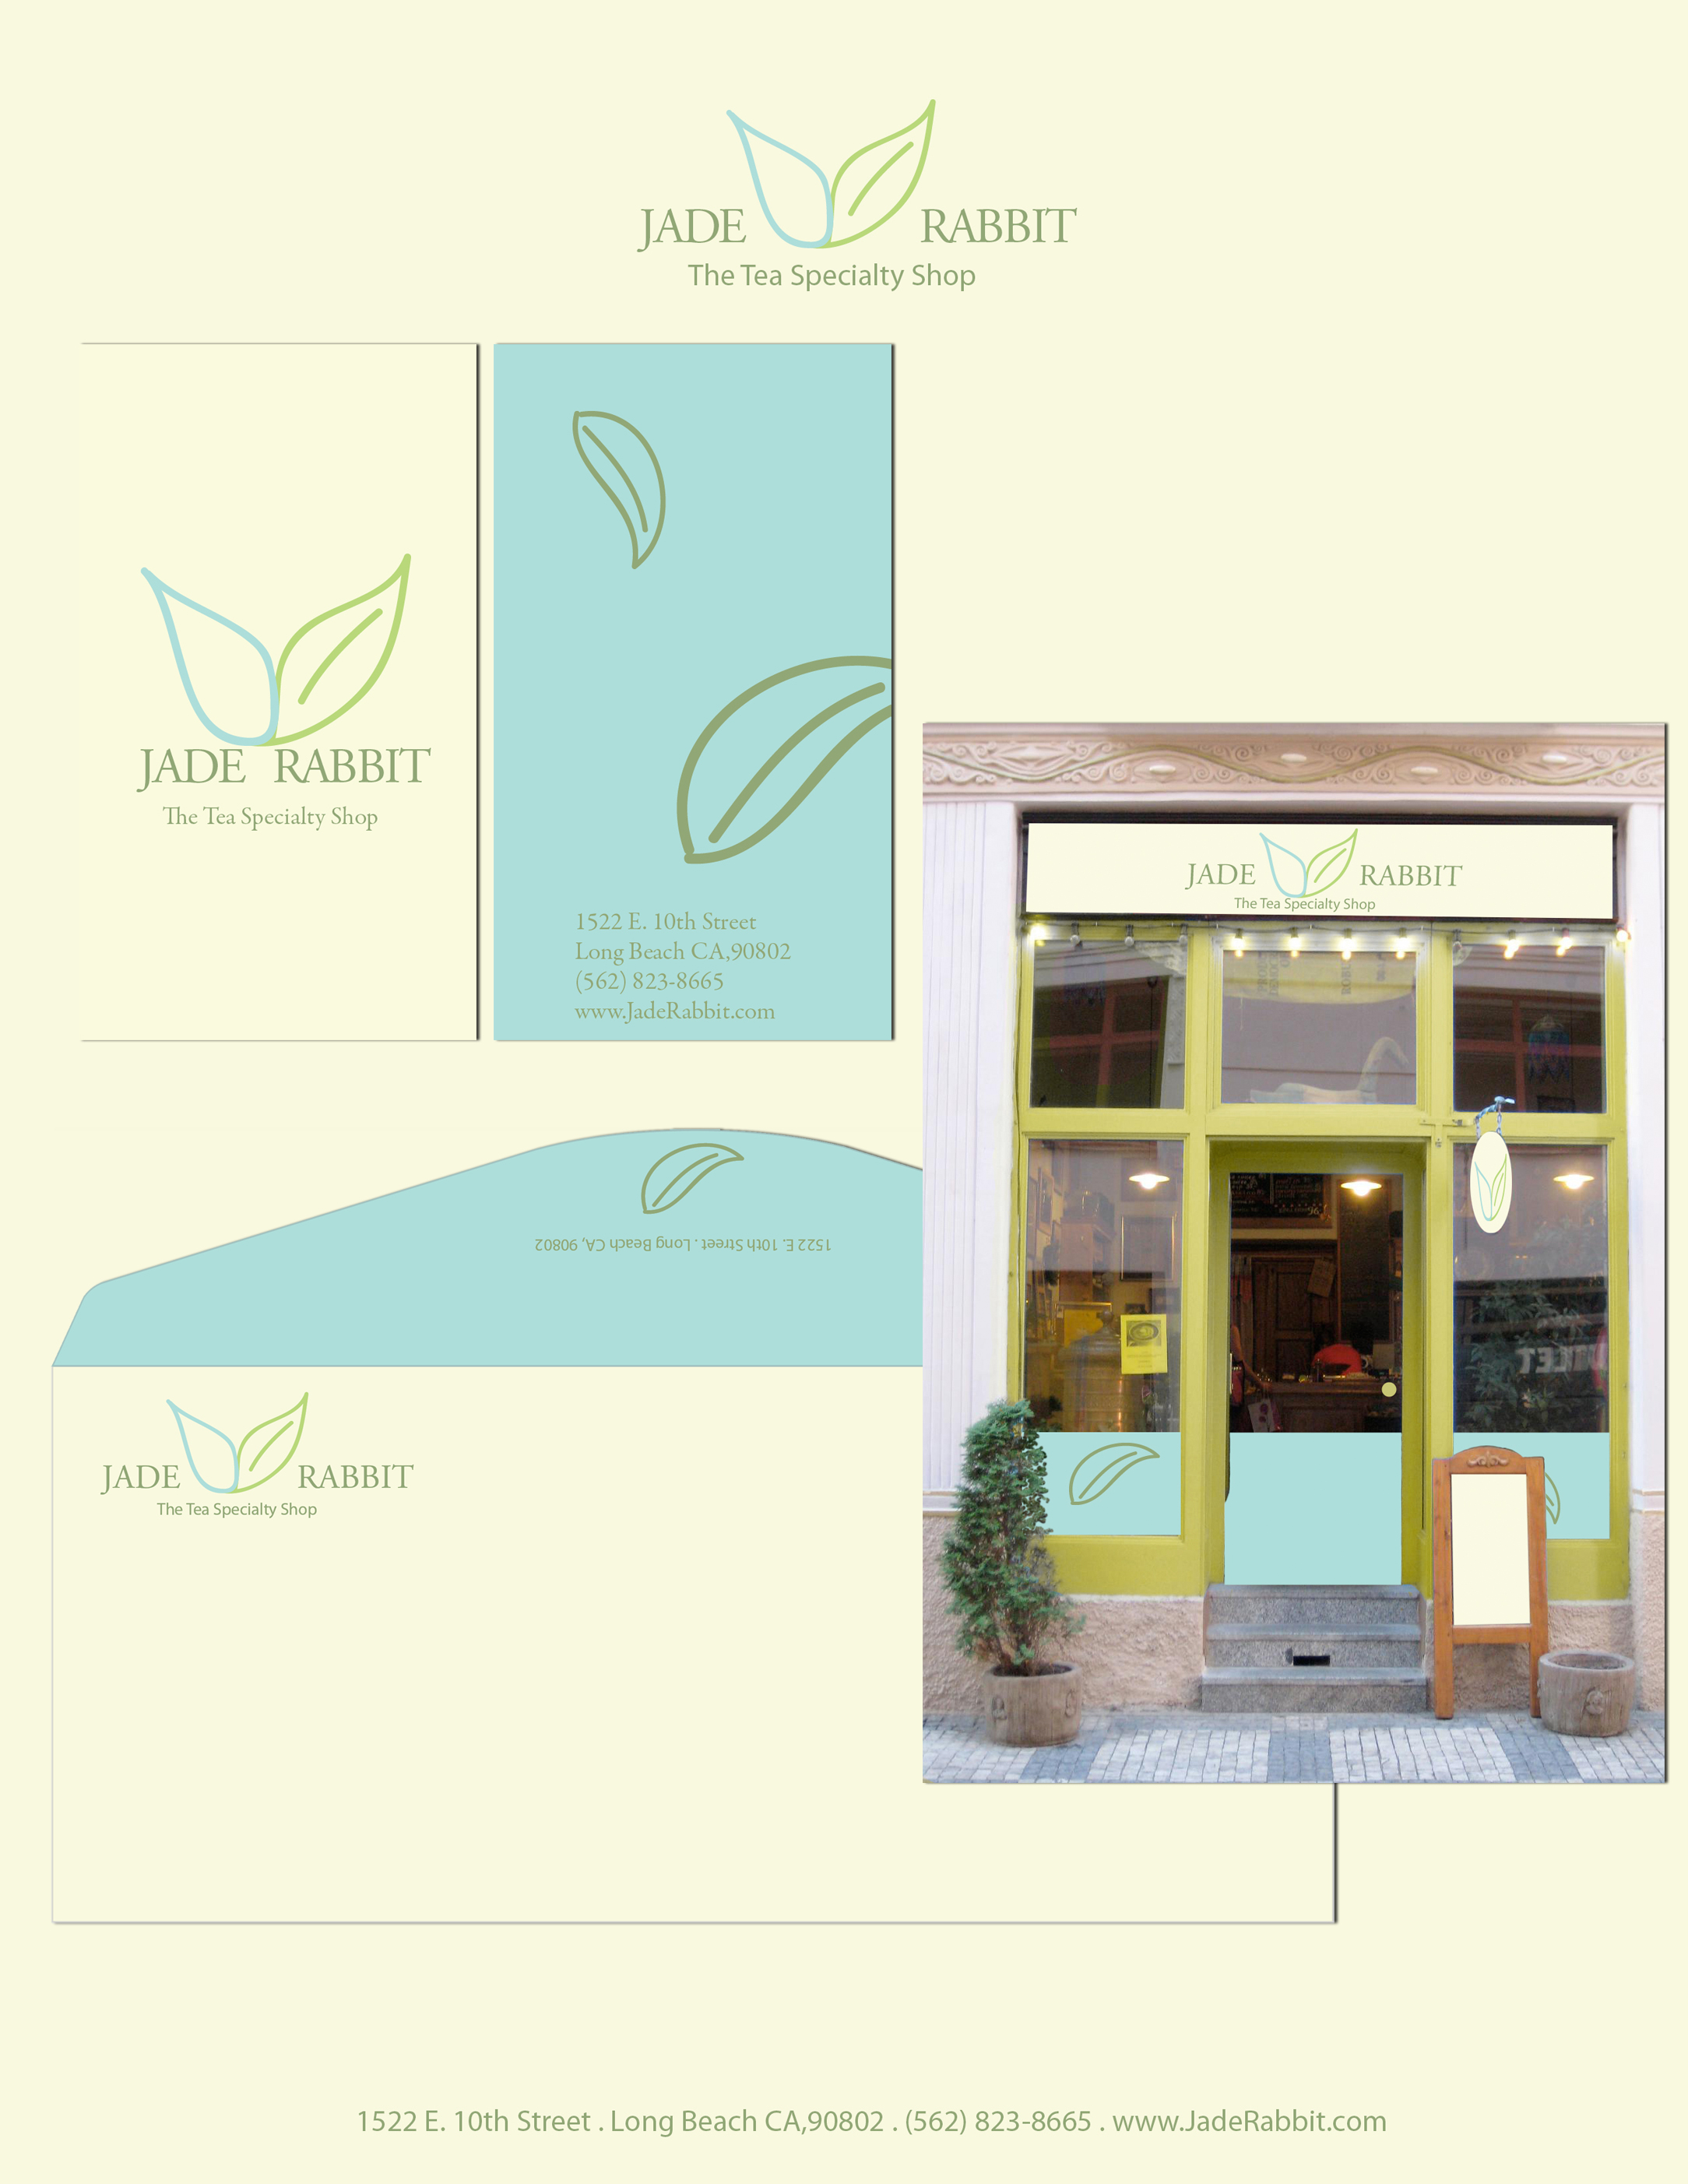 Jade Rabbit - Collateral and Storefront Design